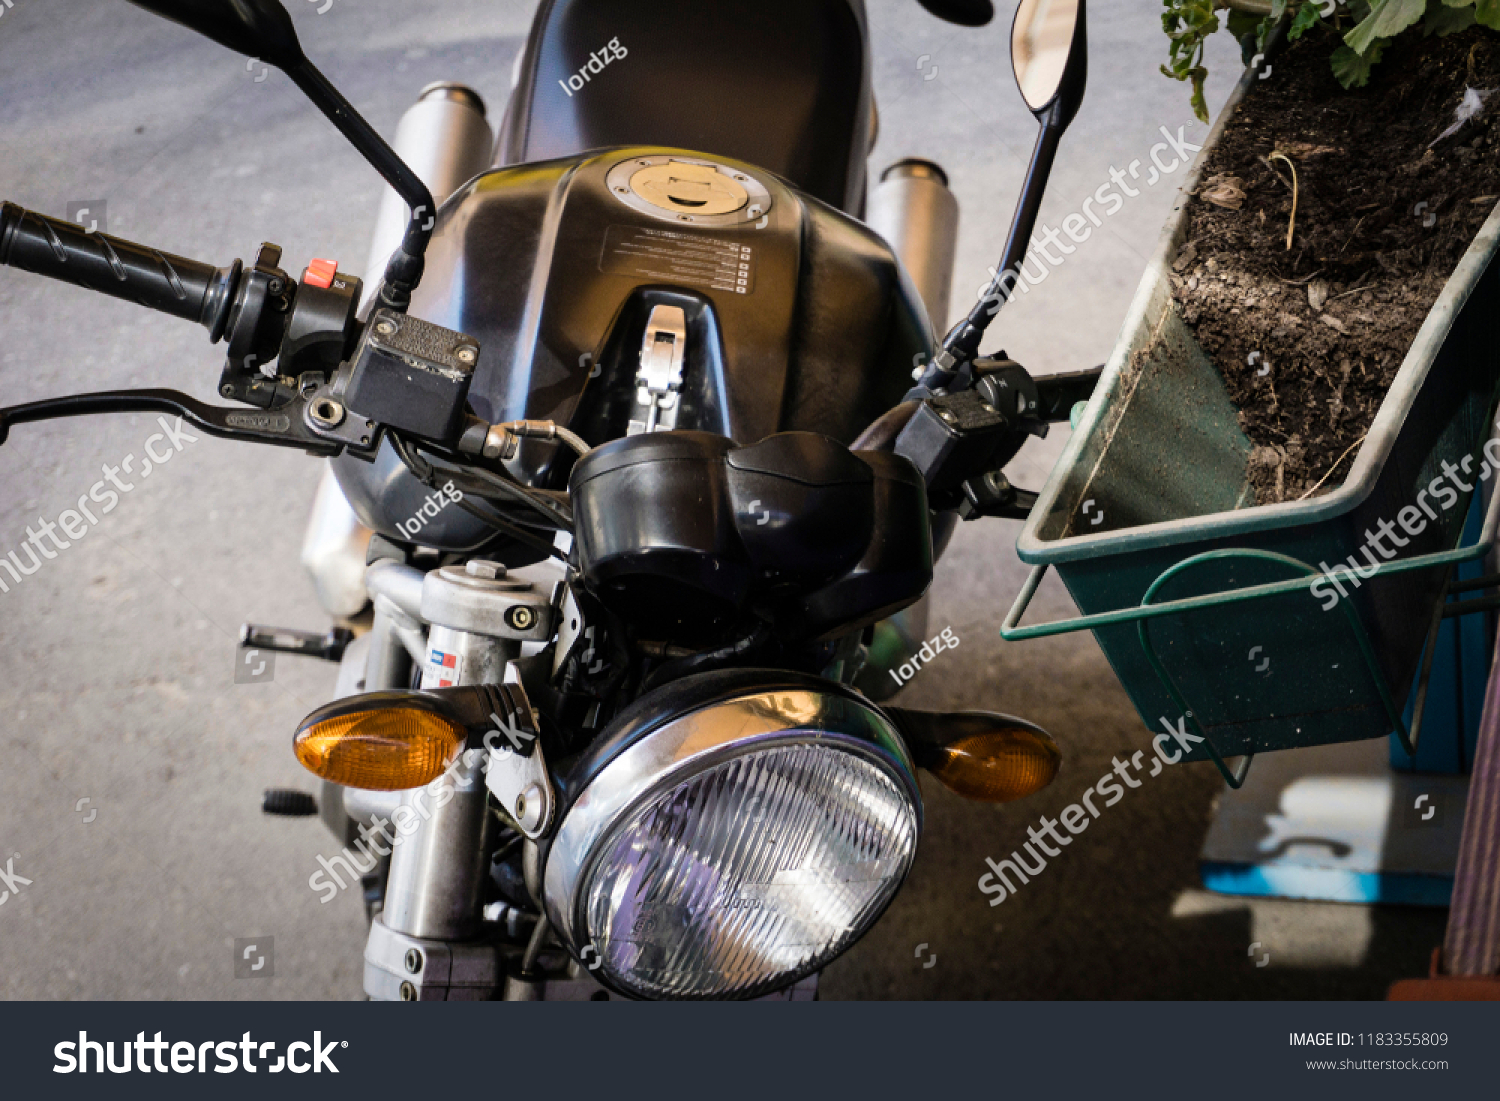 hight resolution of zagreb croatia 09 18 2018 old neglected ducati monster bike parked on